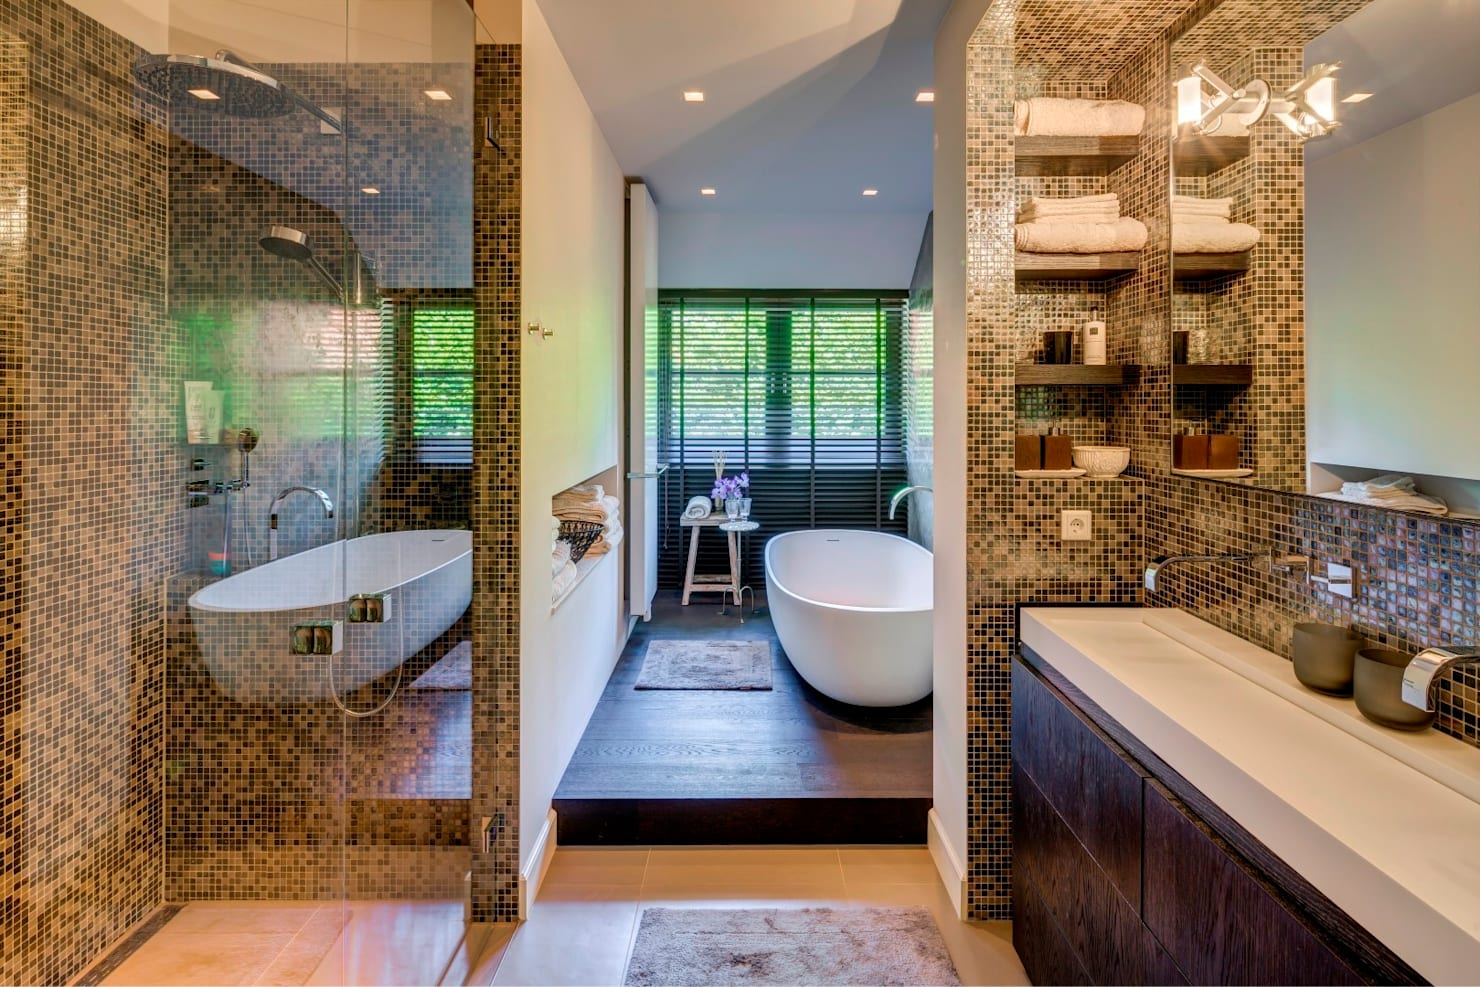 12 Luxury bathrooms to inspire your very own